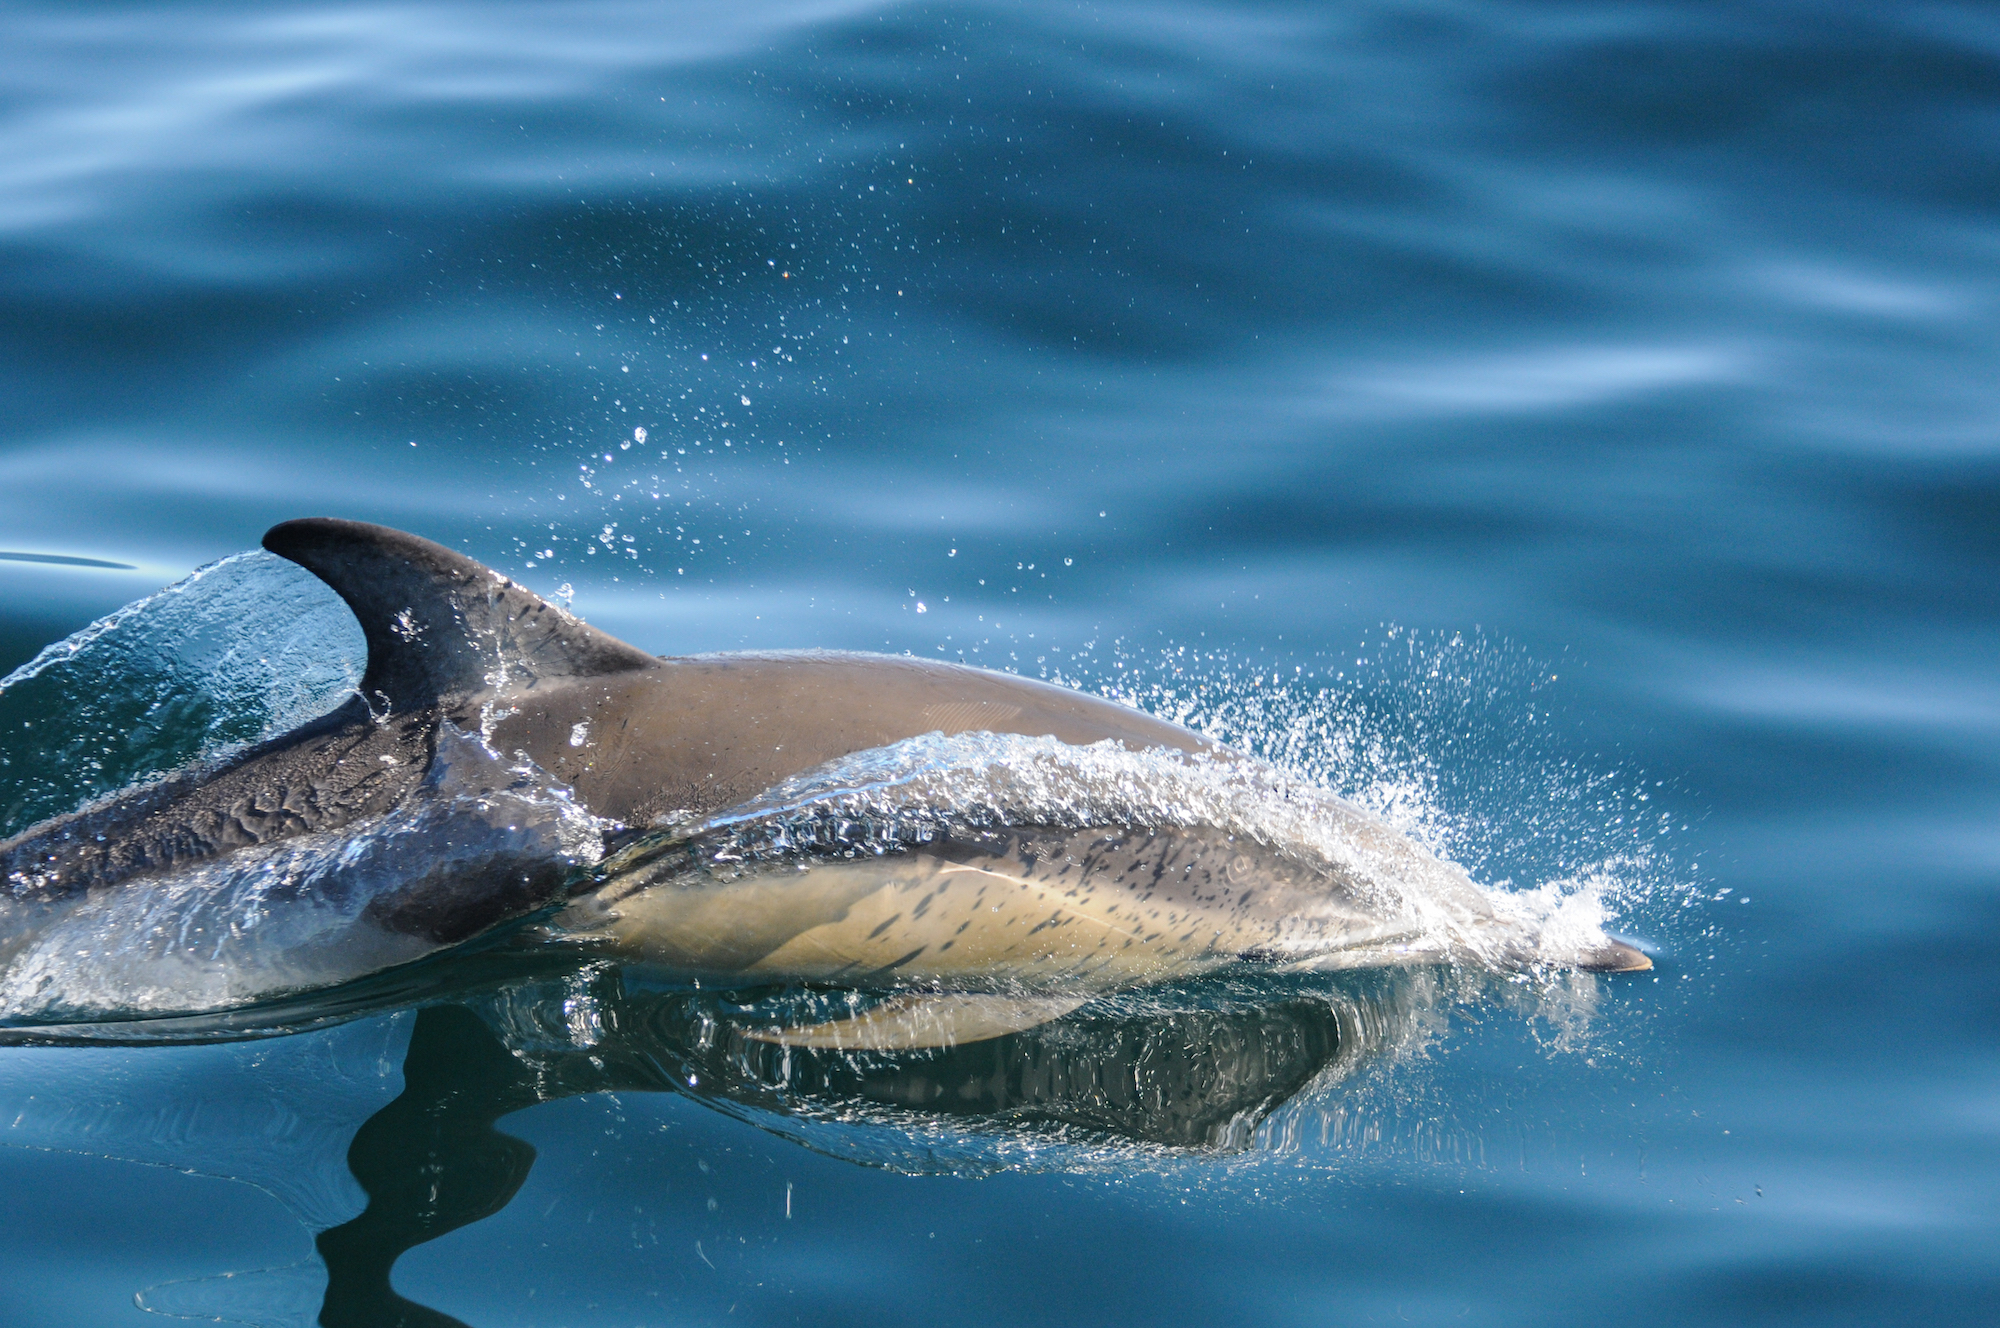 Whale and dolphin watching from boat in patagonia, Argentina, on October 1, 2016